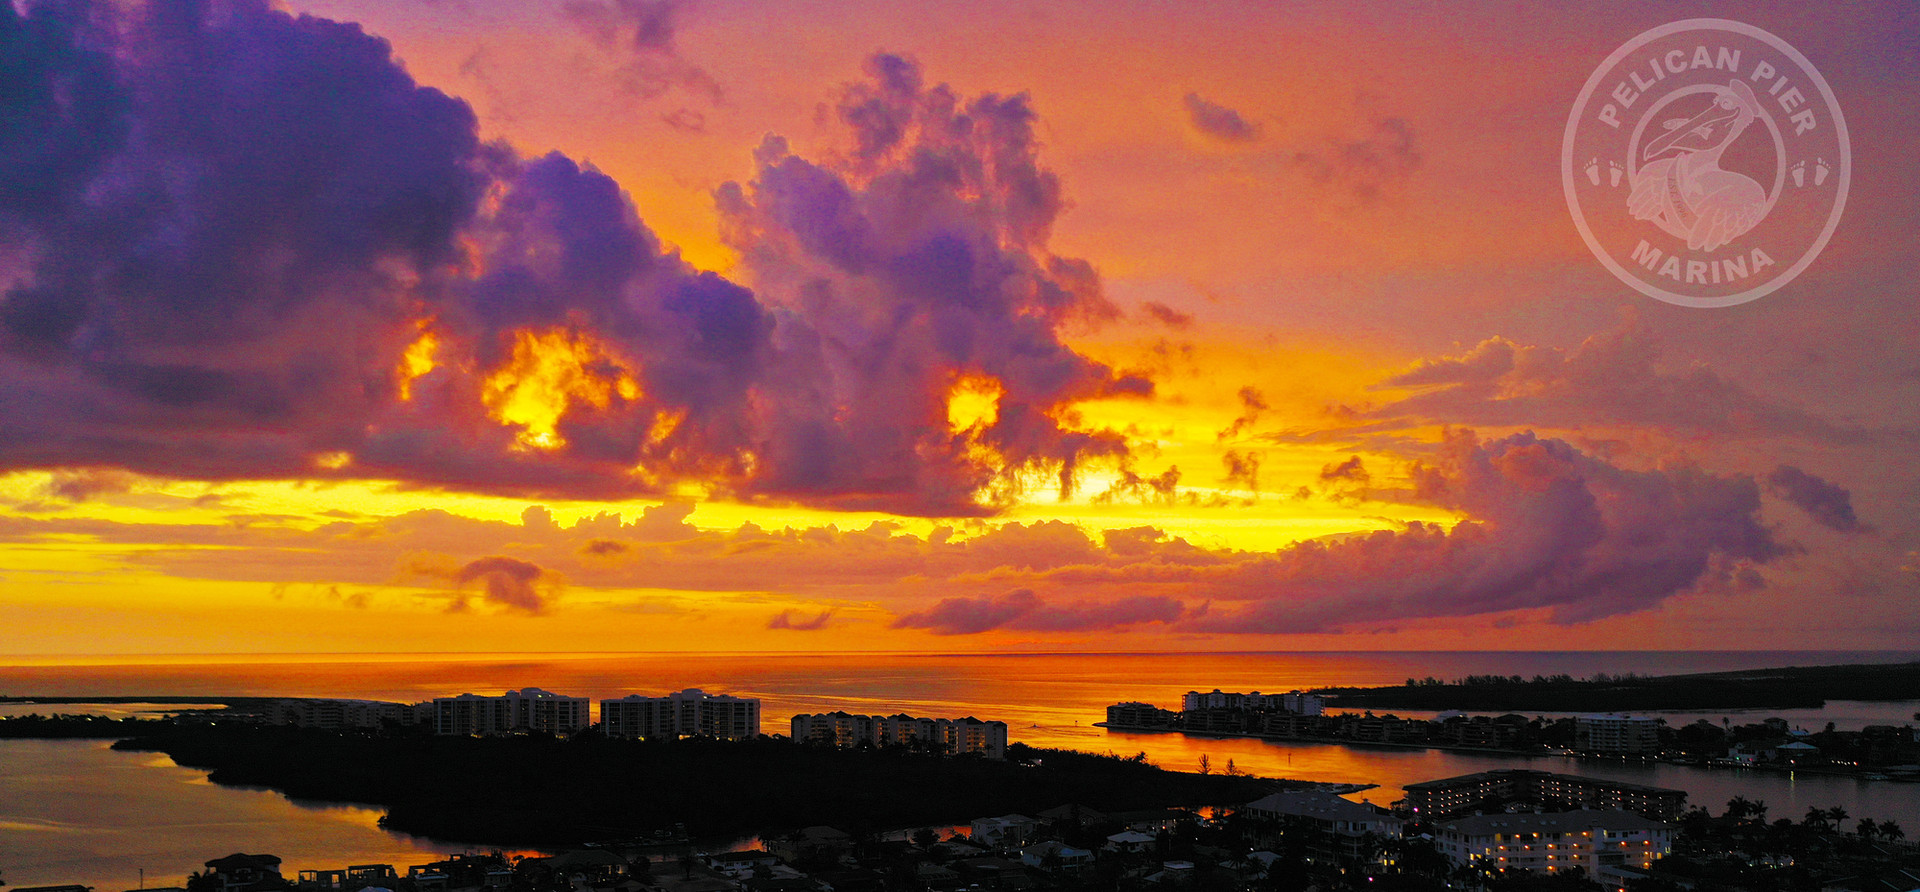 Sunset over the gulf above Pelican Pier Marina